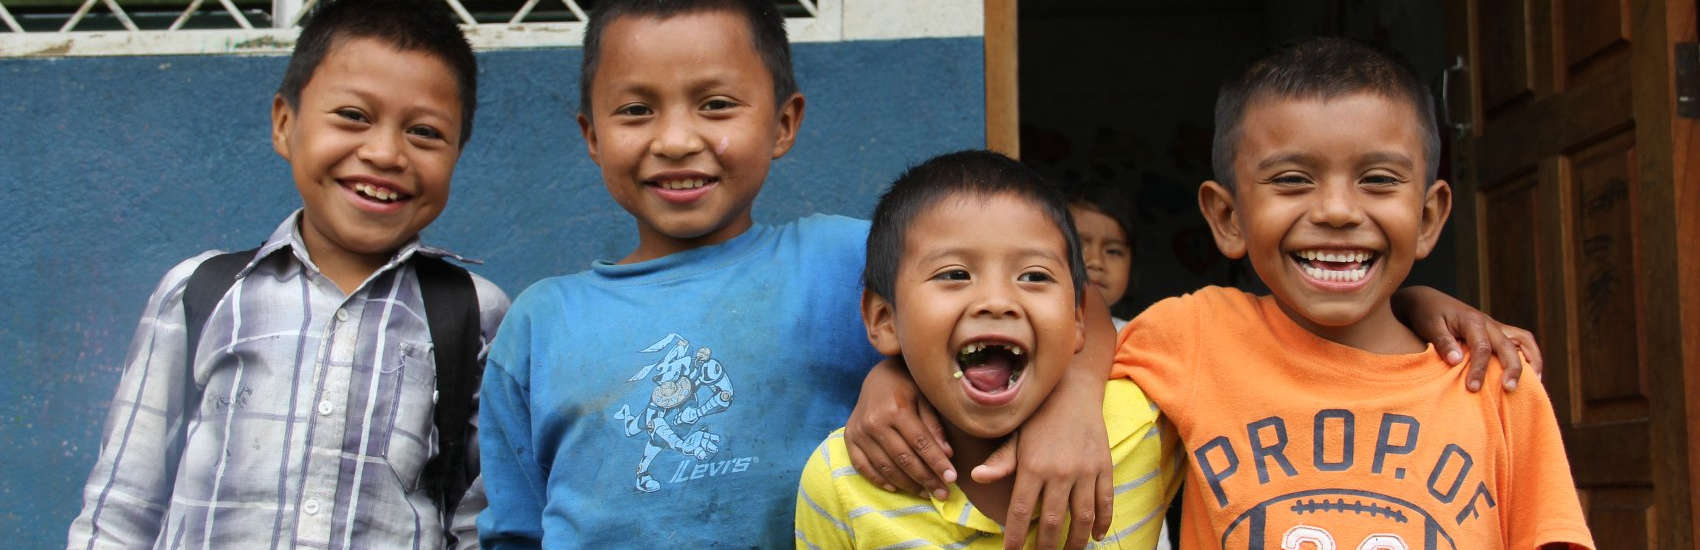 A young boy, Lesbi and his three friends put their arms around each other and smile for the camera at a Save the Children-sponsored school in the mountains of Nicaragua. Photo credit: Save the Children, June 2014.